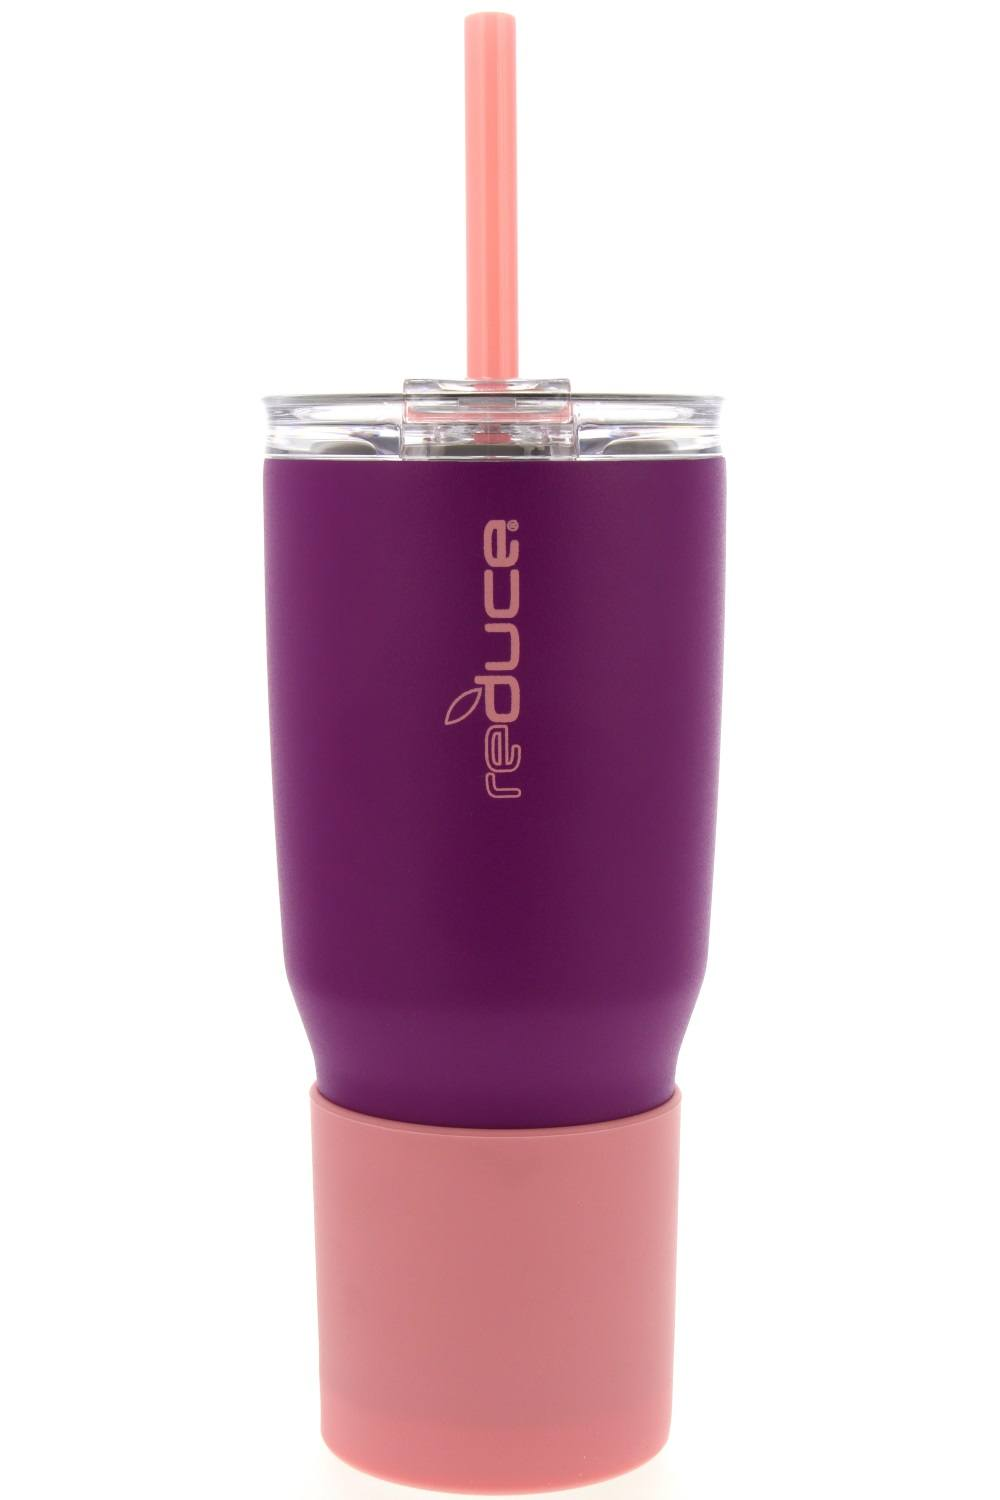 Silver Stainless Steel Travel Tumbler Cup w// Straw 01526 Reduce Cold-1 34 oz